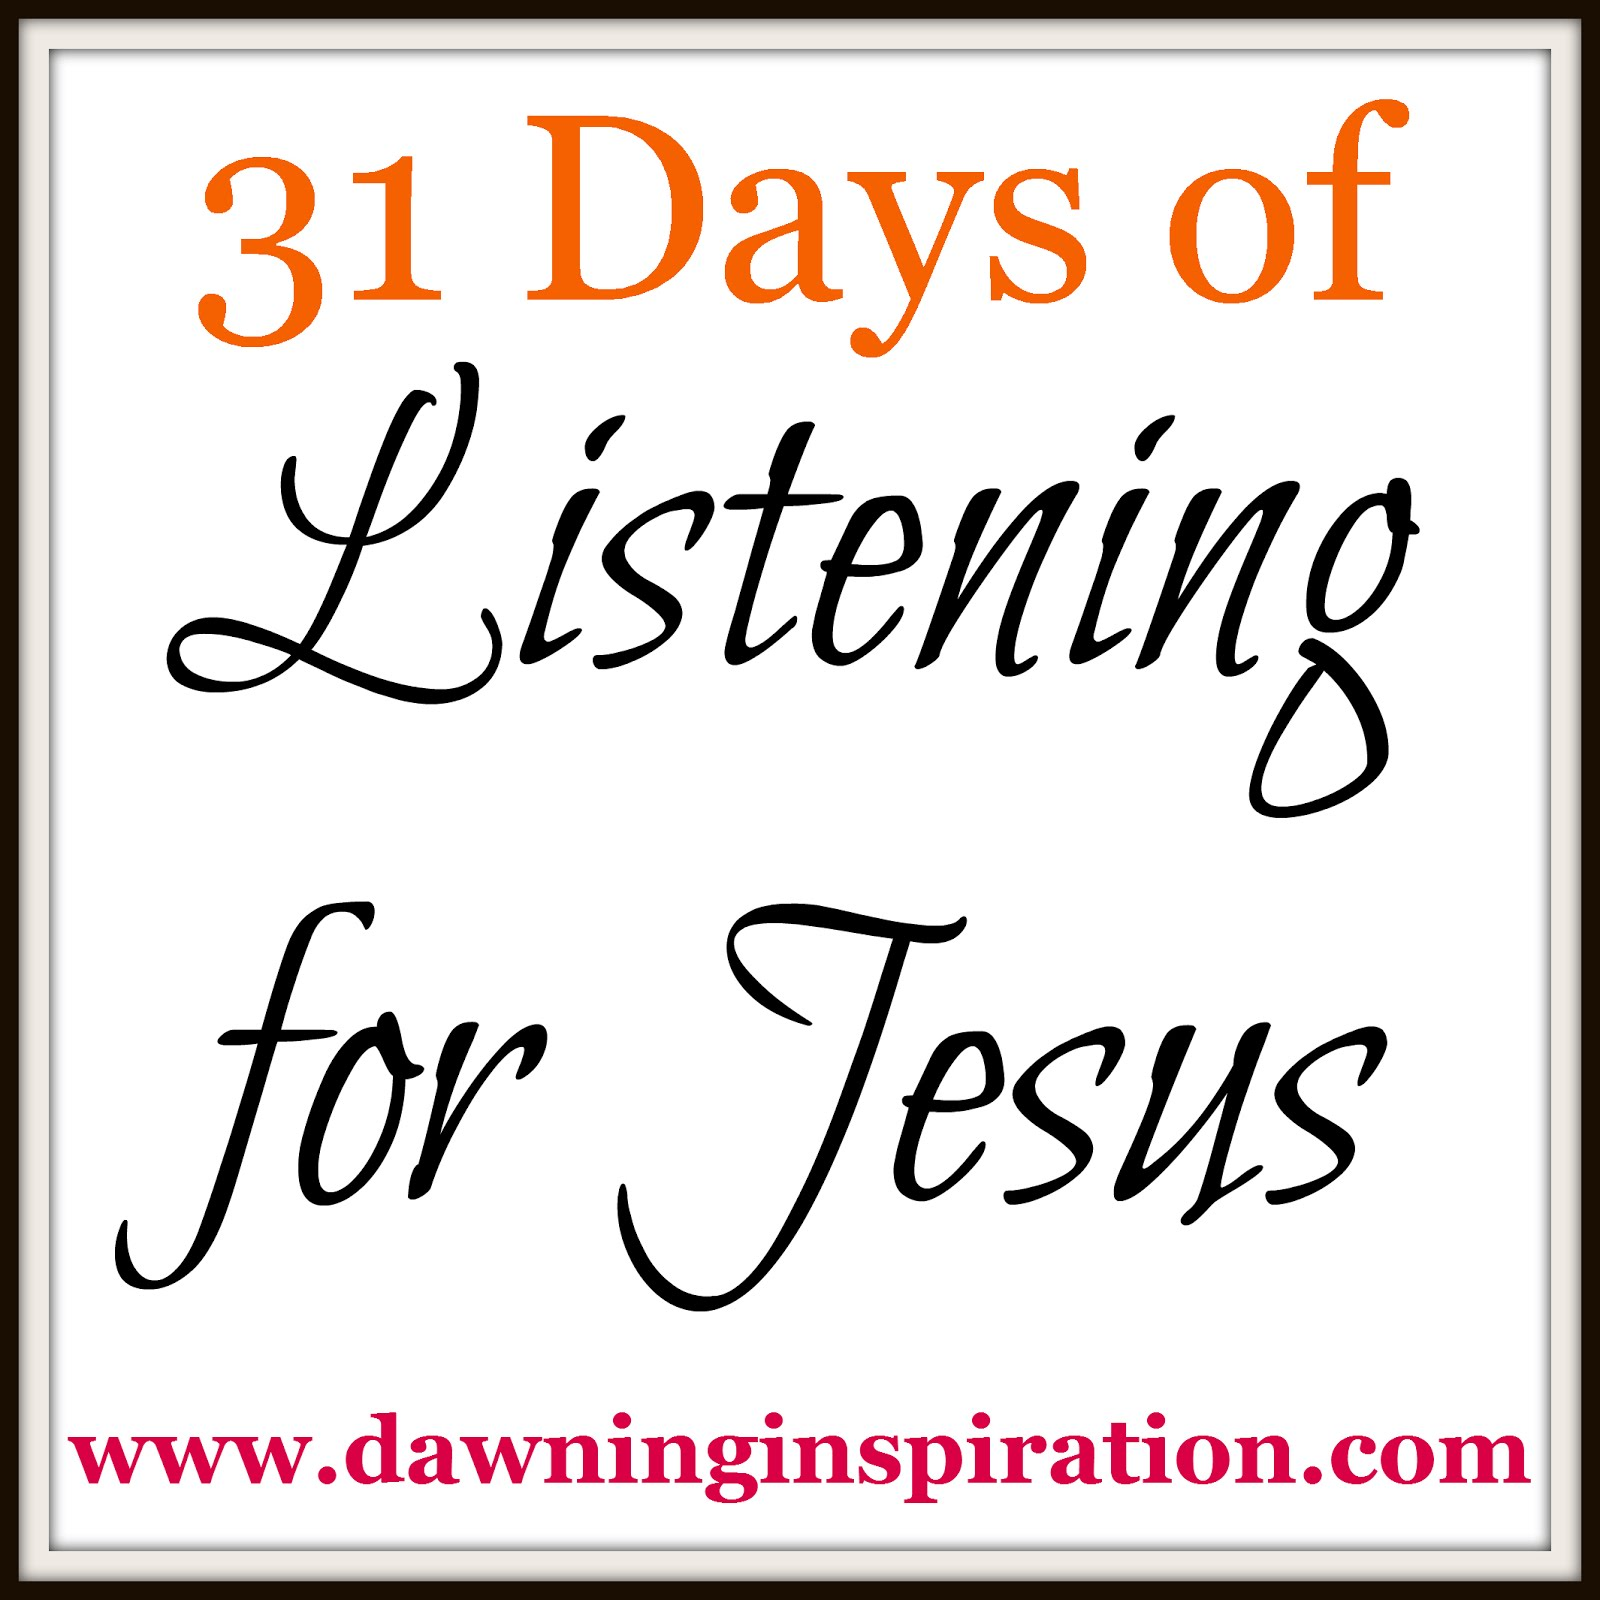 Join Me for 31 Days of Writing